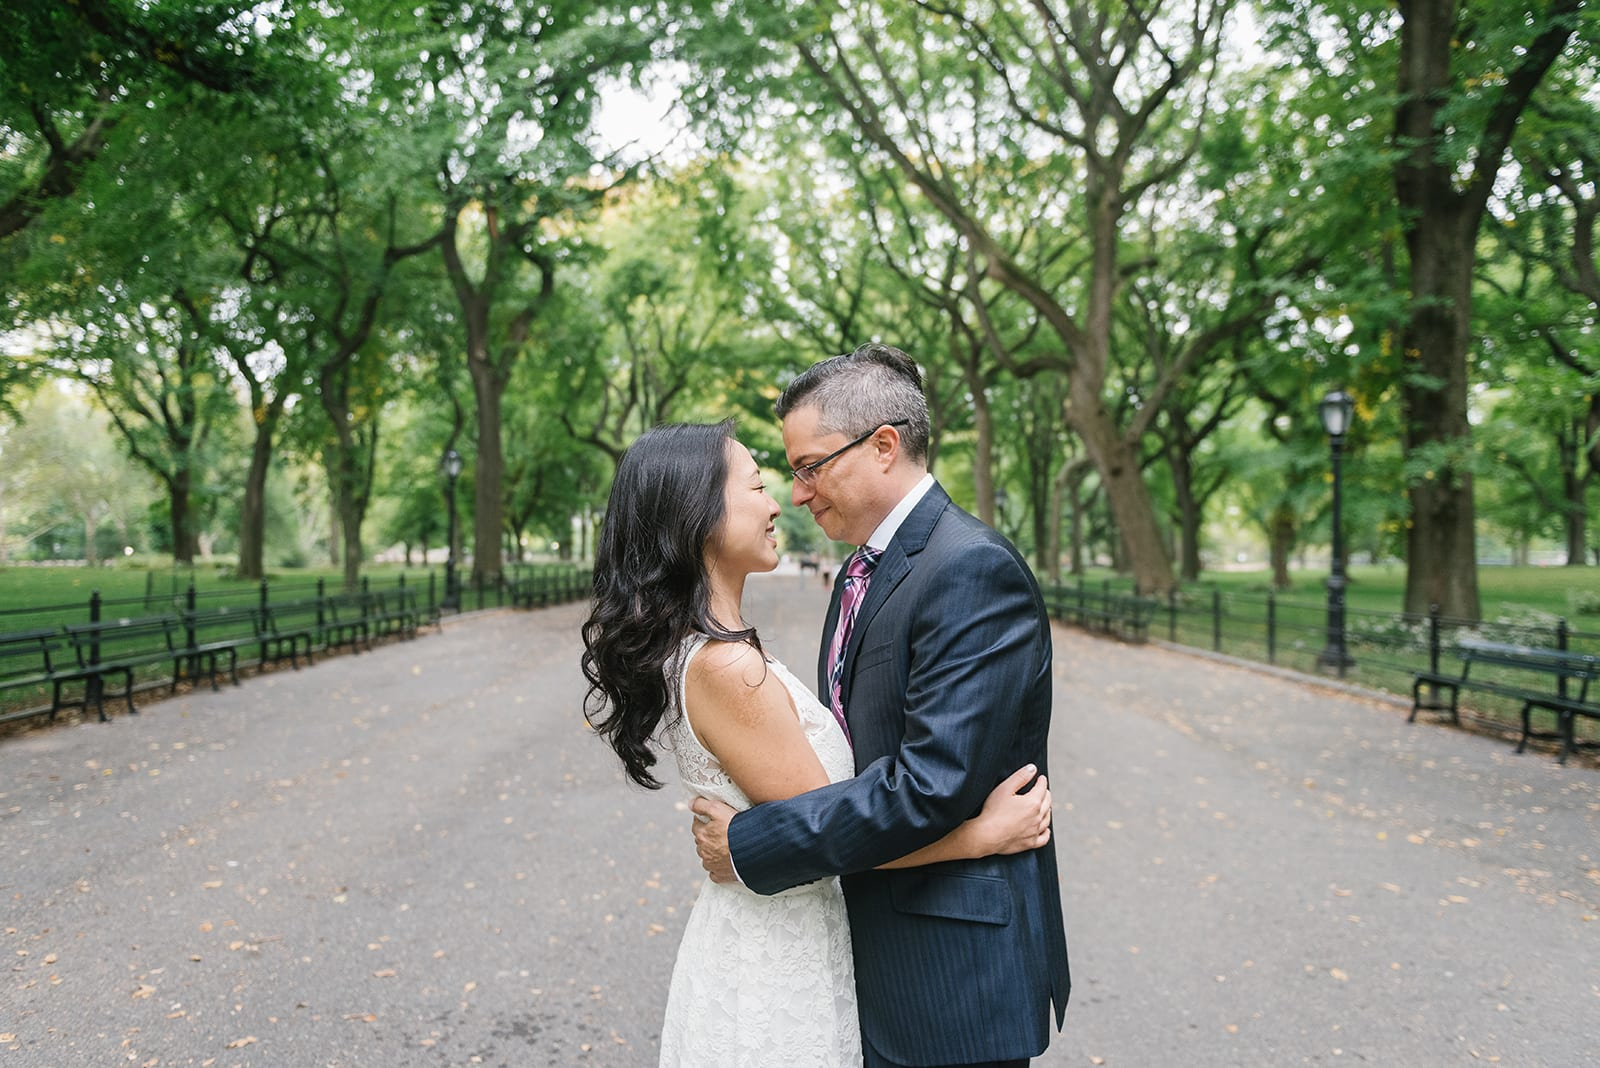 The Mall wedding in Central Park, New York